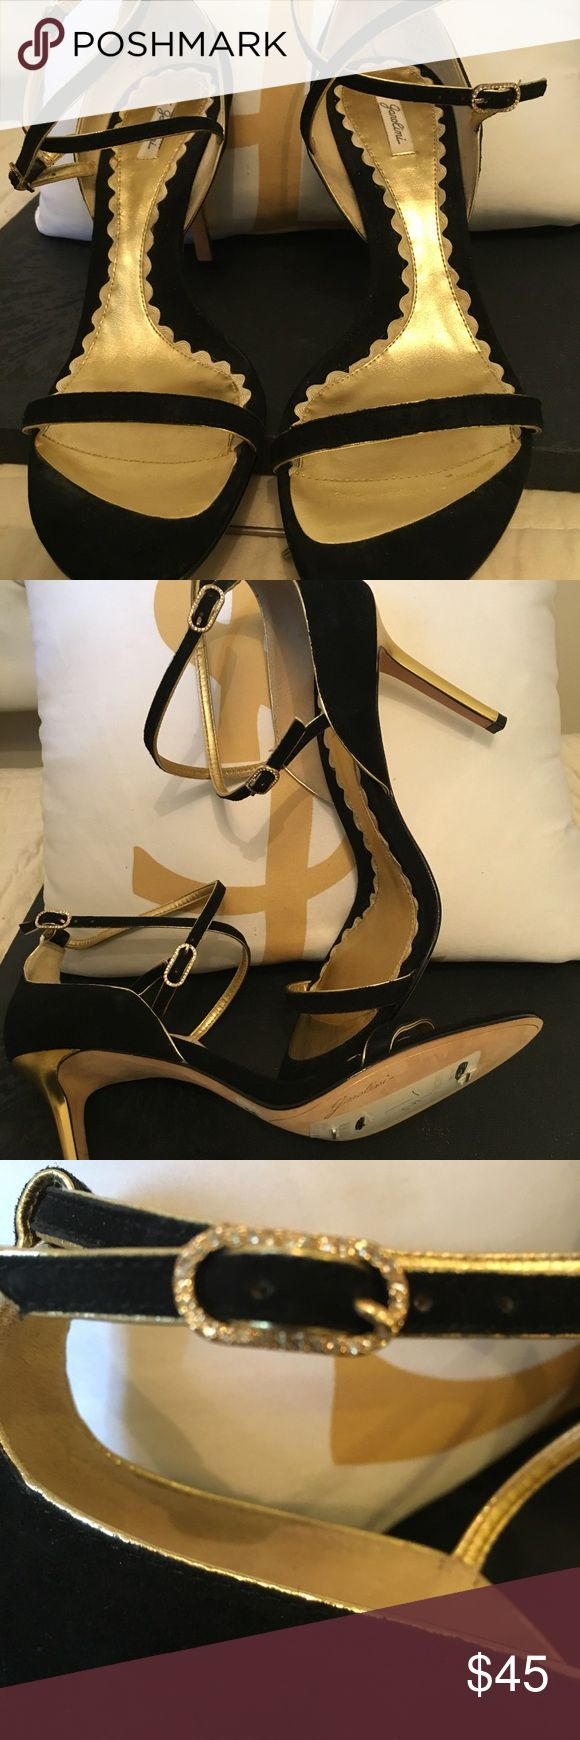 Garolini black suede and gold strappy shoe NWOT Garolini Strappy black suede and gold evening shoe. Gold heels, gold inlay lining, gold trim, leather sole, just gorgeous gold details  in fasteners. ELEGANT!!! Never worn Garolini Shoes Heels